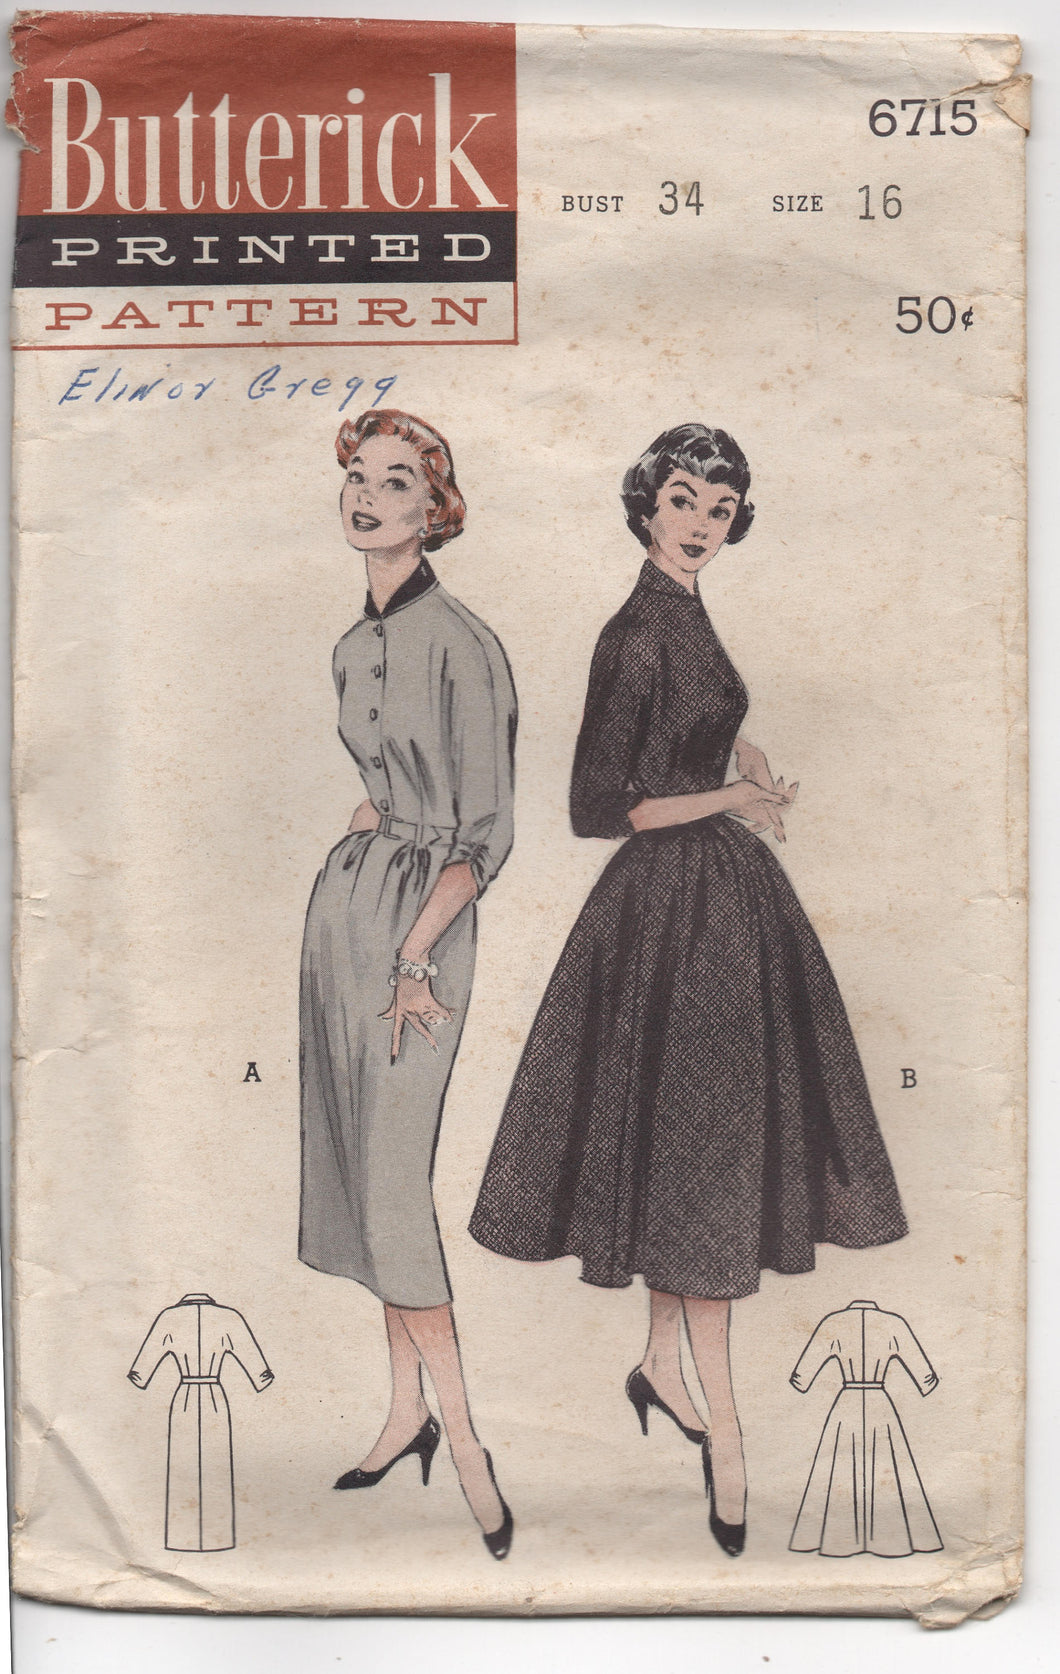 1950's Butterick One Piece Dress with Sloped Shoulders and Bouffant Skirt Pattern - Bust 34